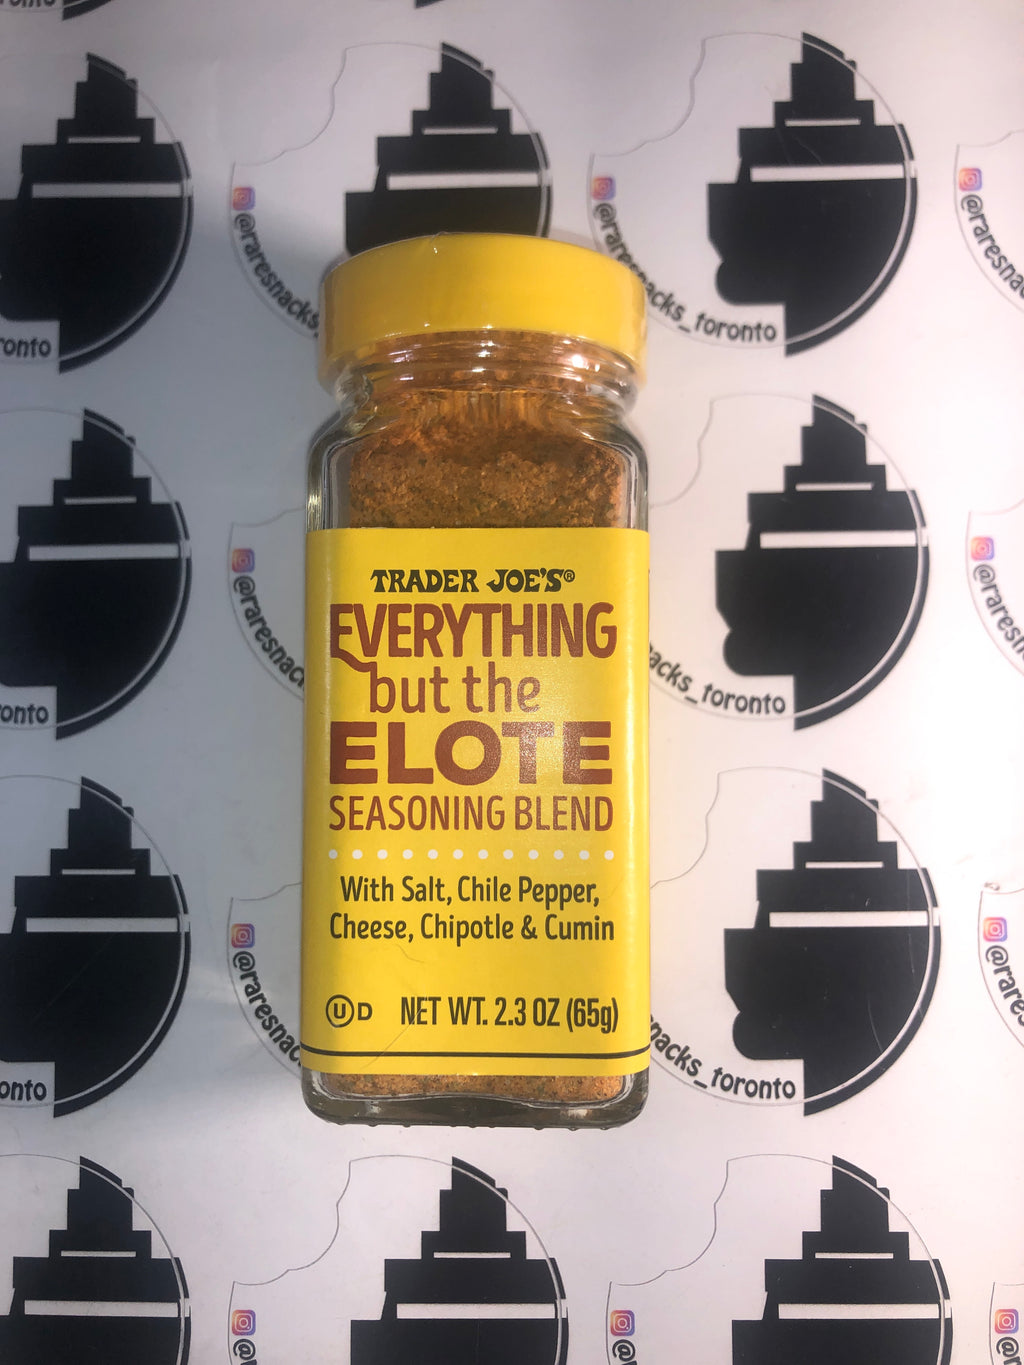 Trader Joes Everything but the Elote Seasoning